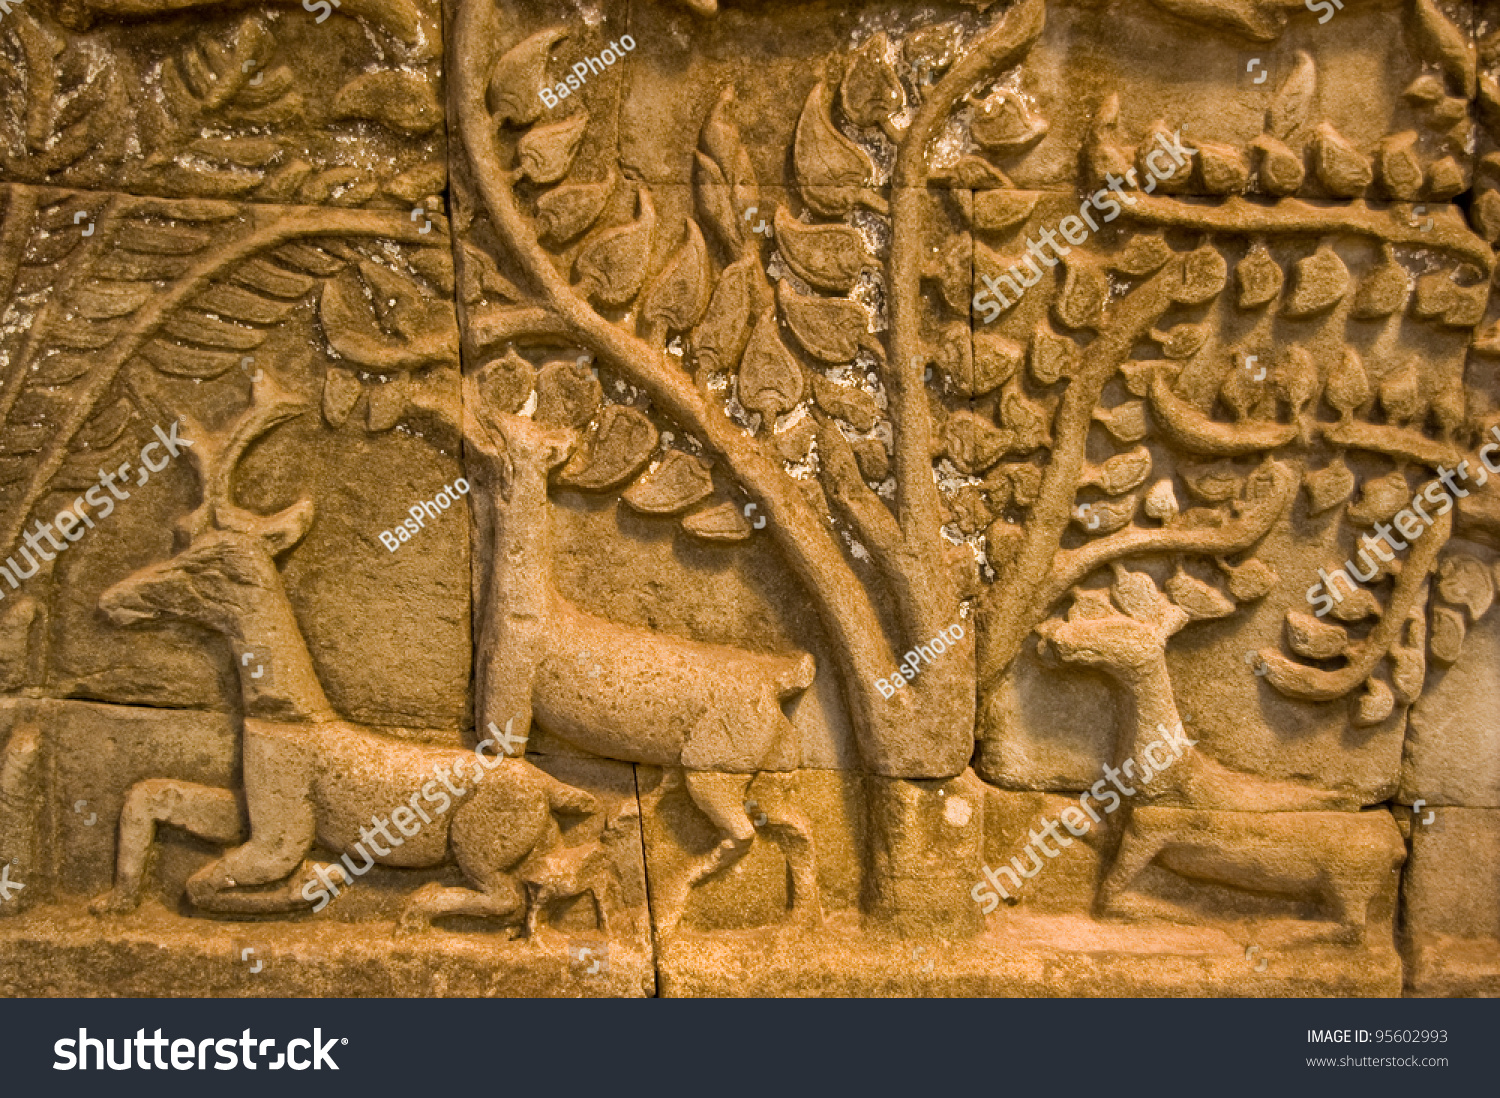 Ancient bas relief carving showing deer in a forest wall